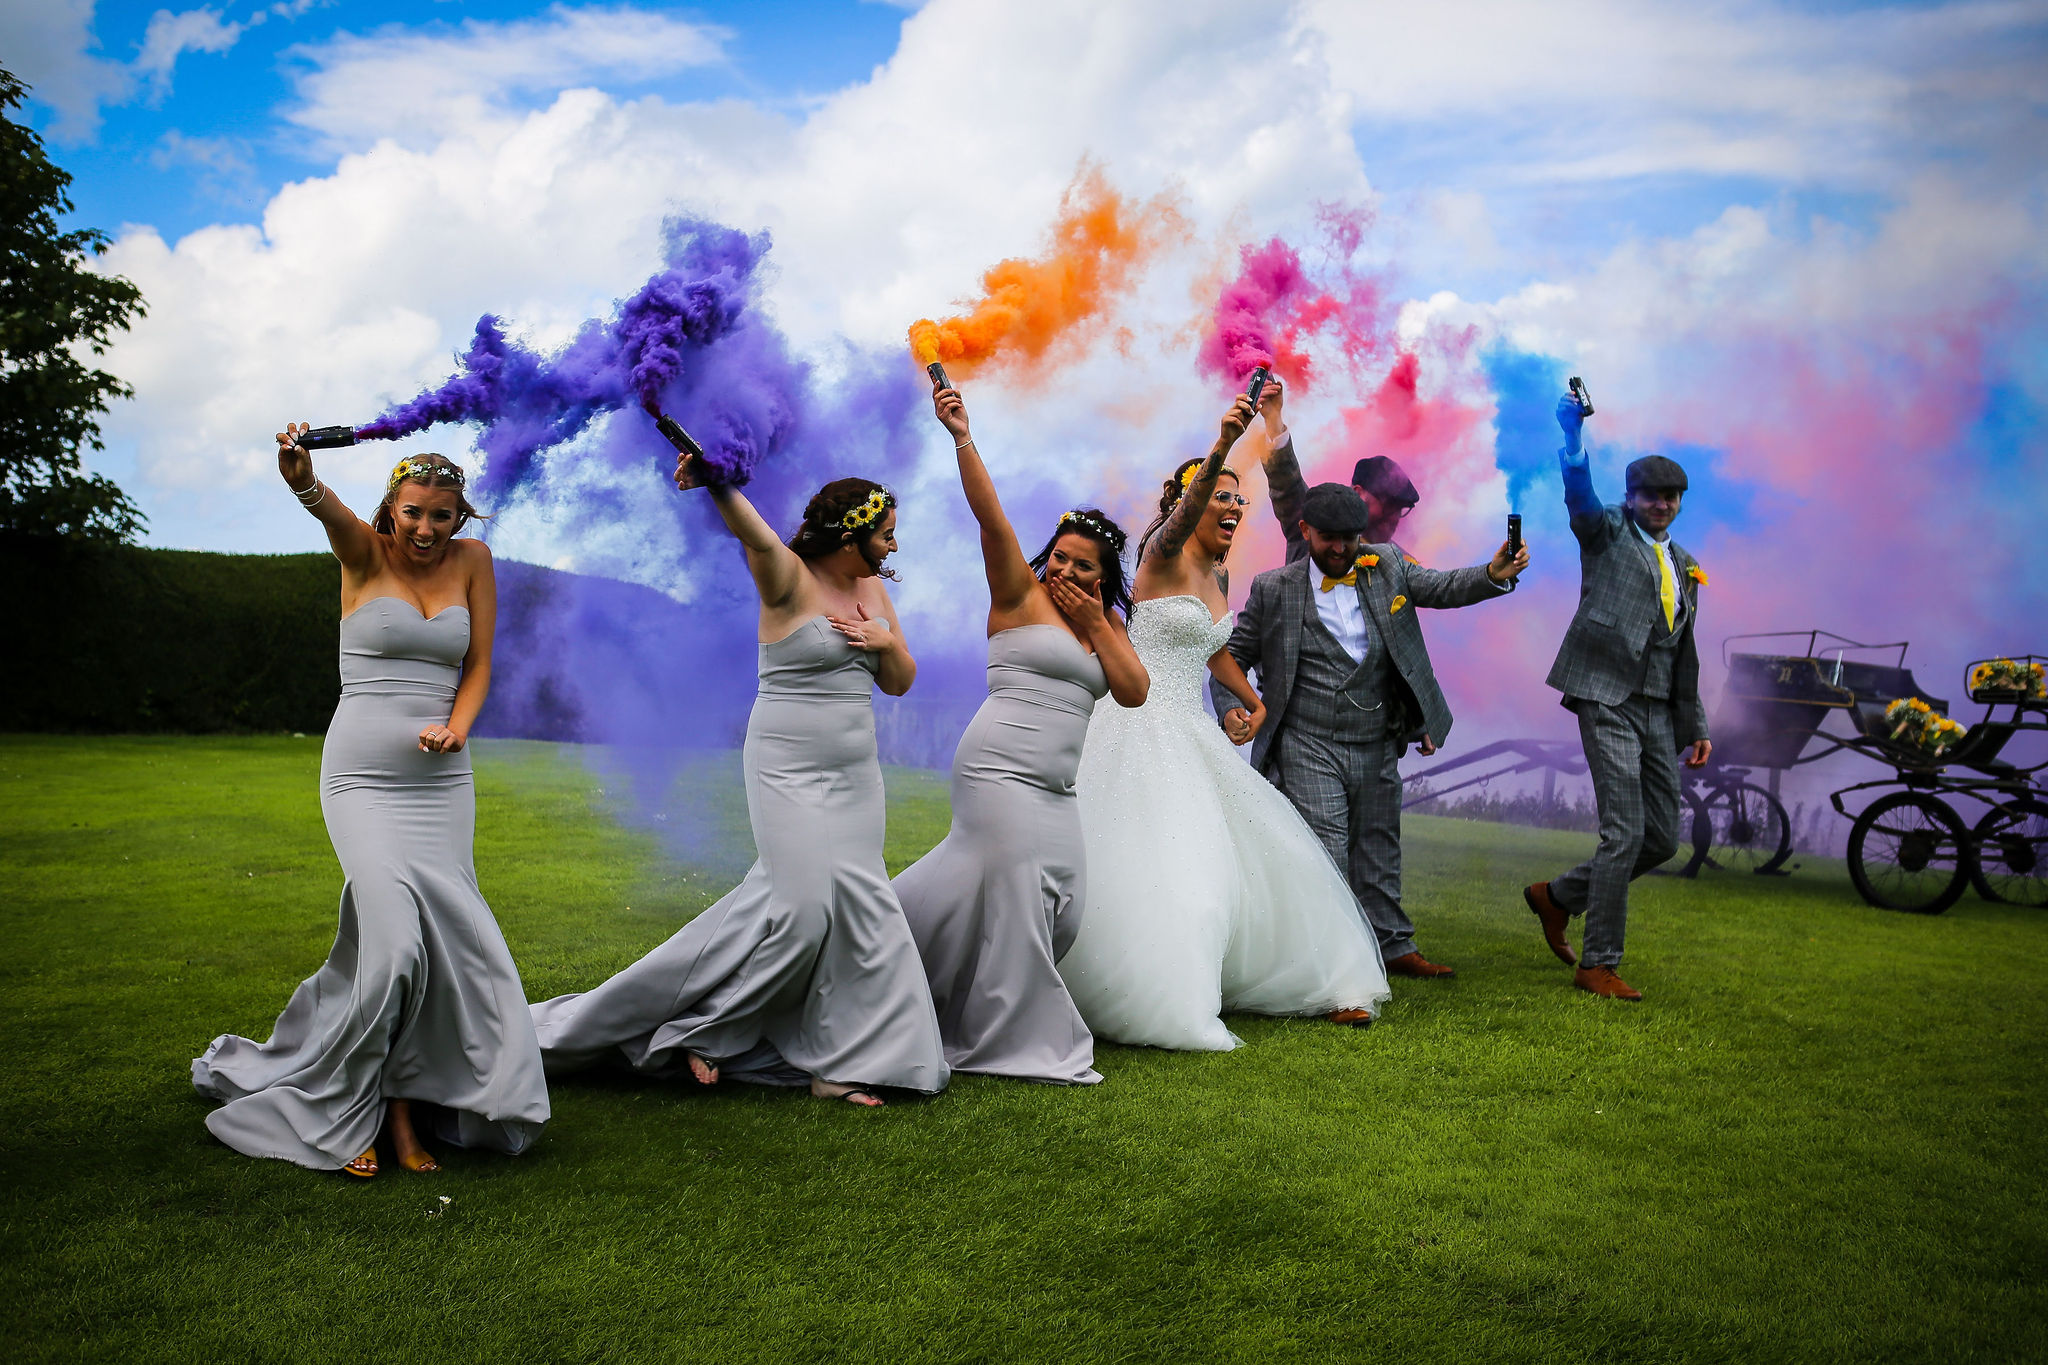 Harriet&Rhys Wedding - Magical sunflower wedding - quirky and alternative wedding with smokebombs